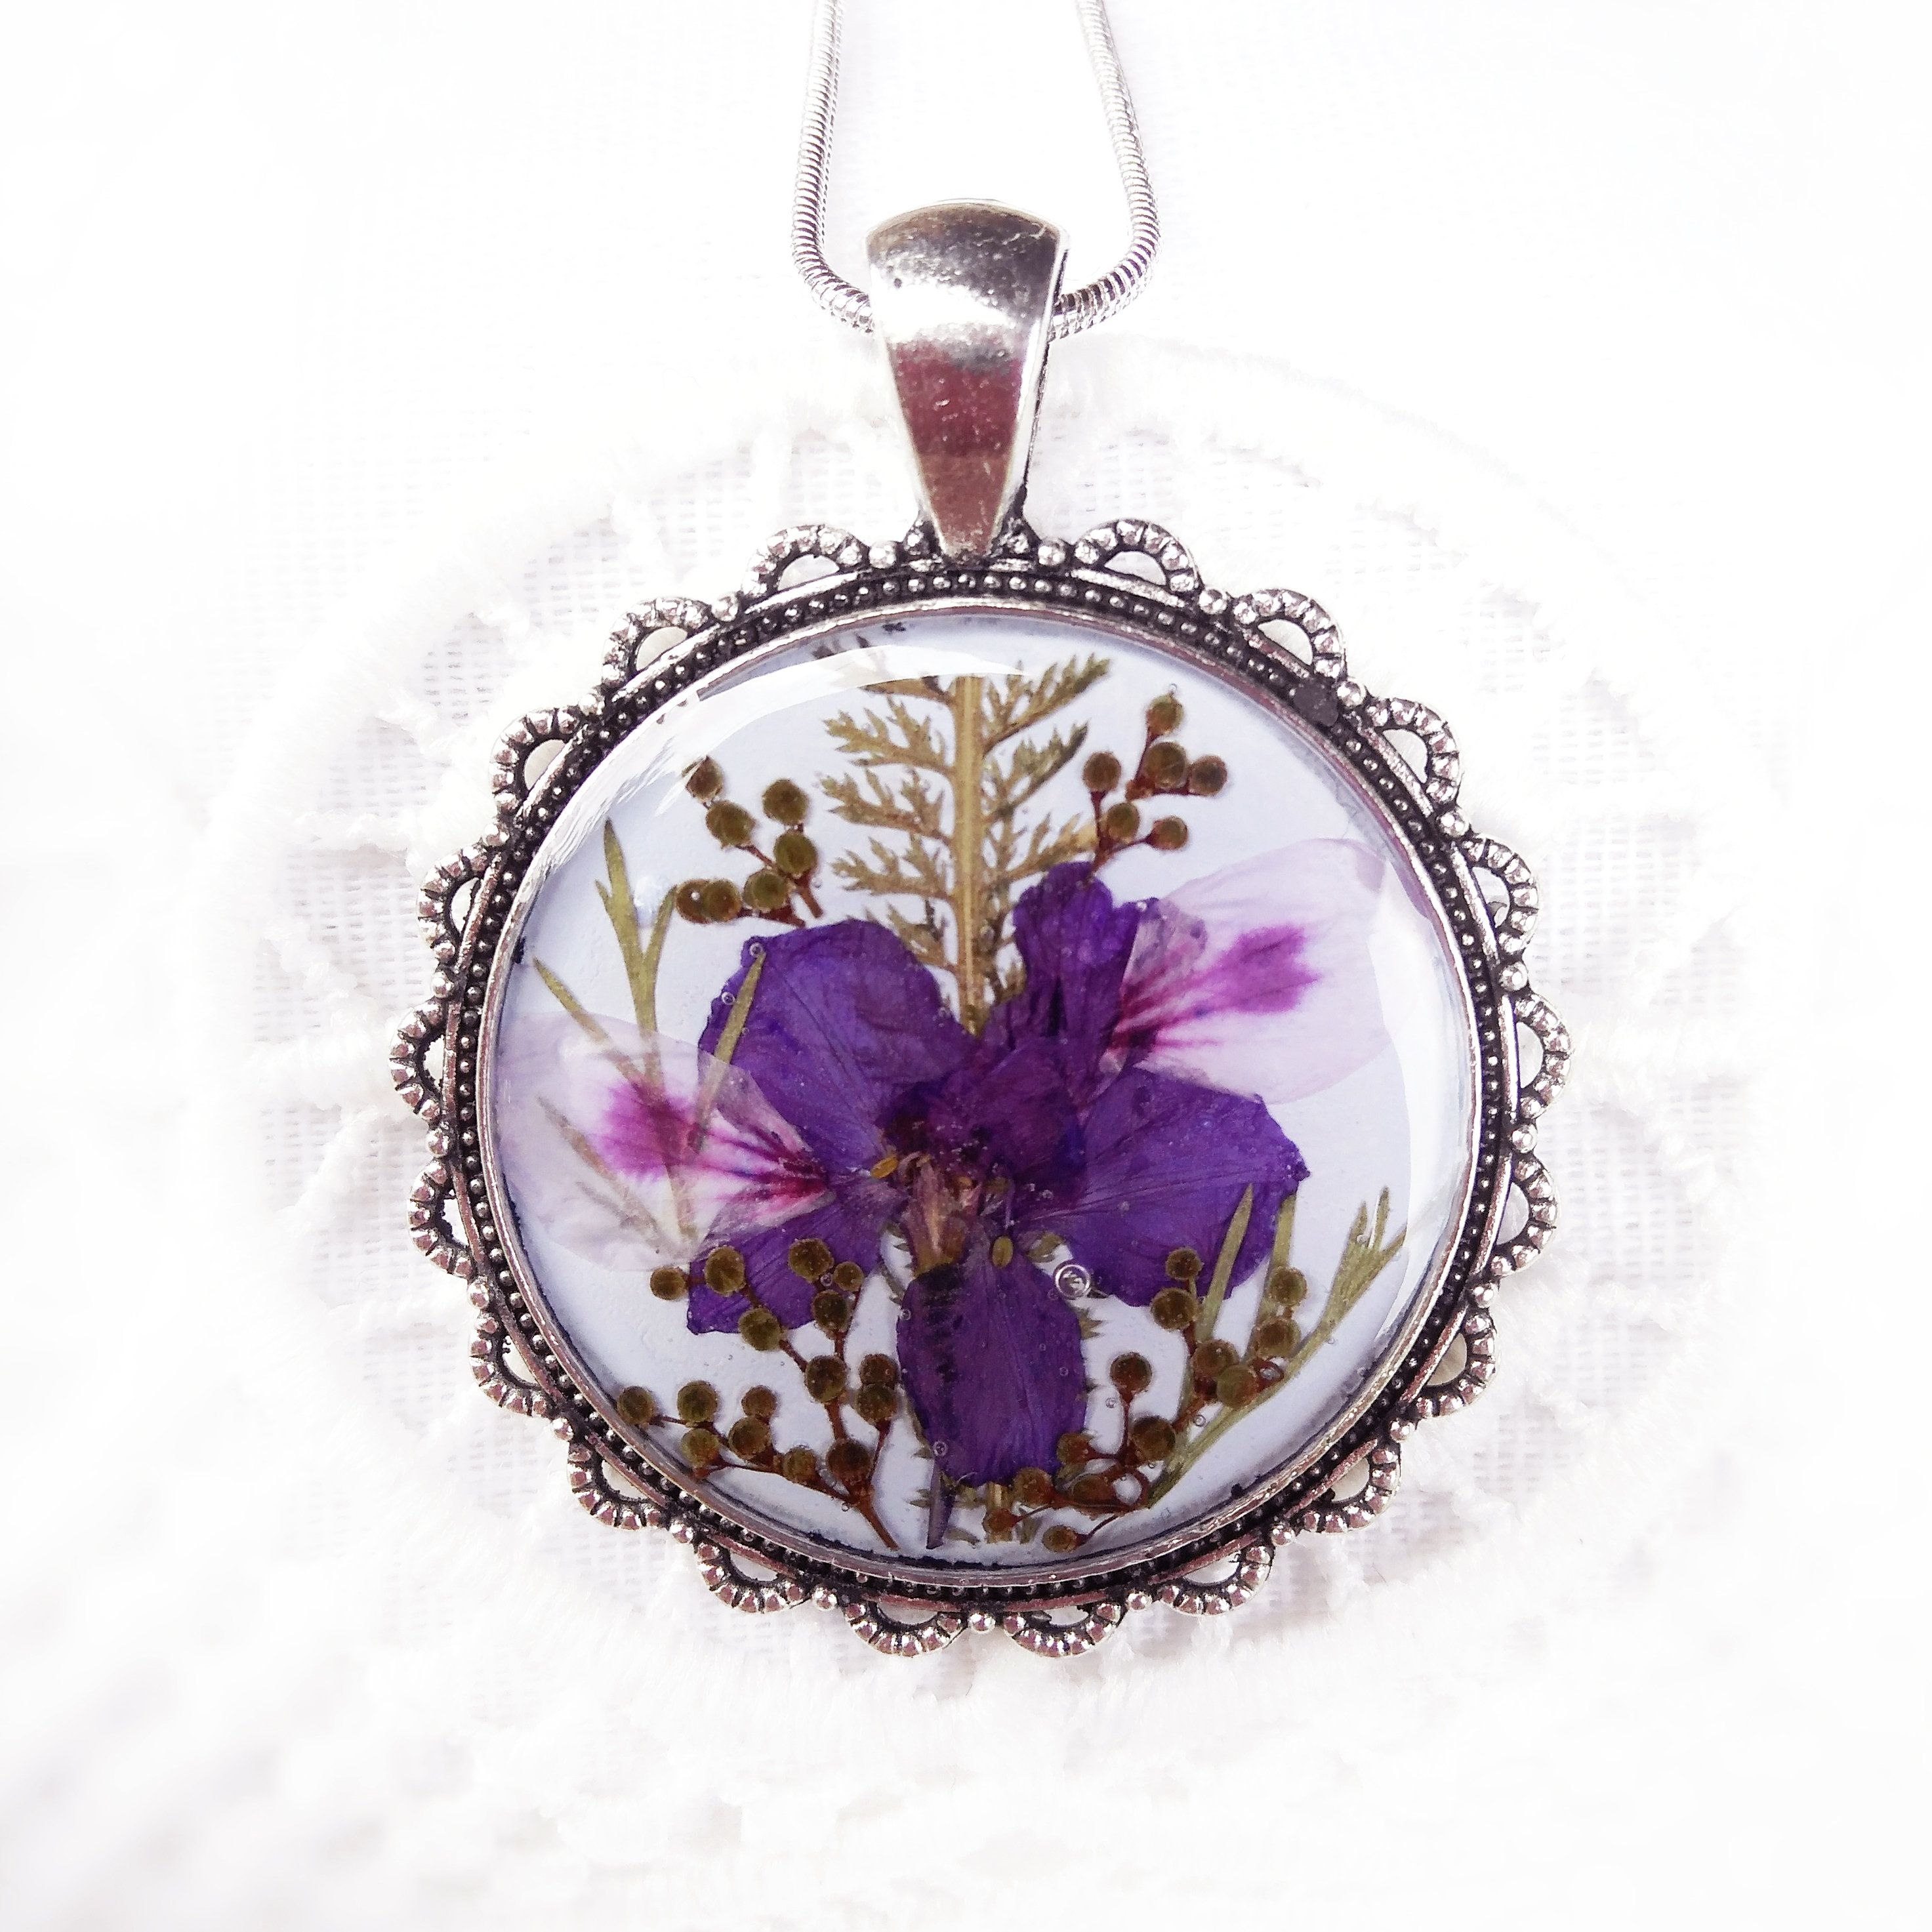 Terrarium Real Plant Lilac Necklace With Dried Flower Real Purple Flower Jewelry Preserve Resin P Dried Flower Jewelry Real Flower Jewelry Flower Resin Jewelry